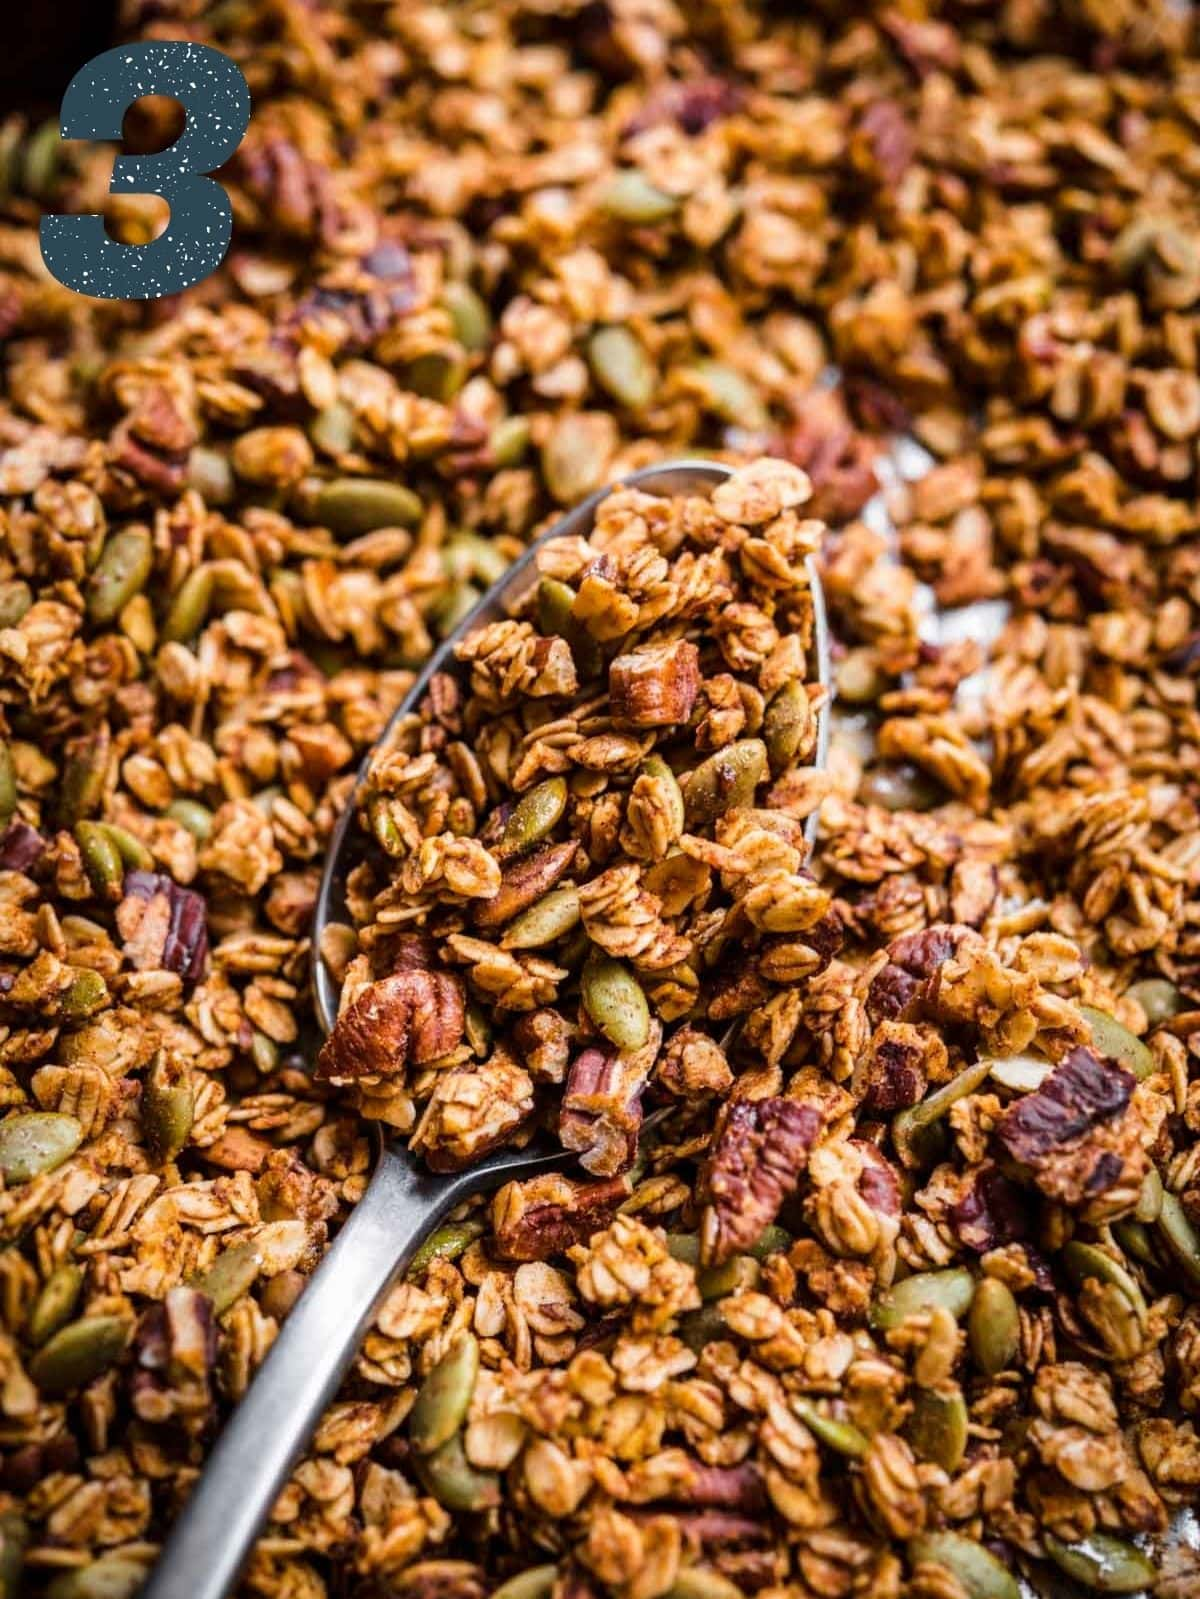 Granola on a sheet pan with some of it in a spoon facing the camera.